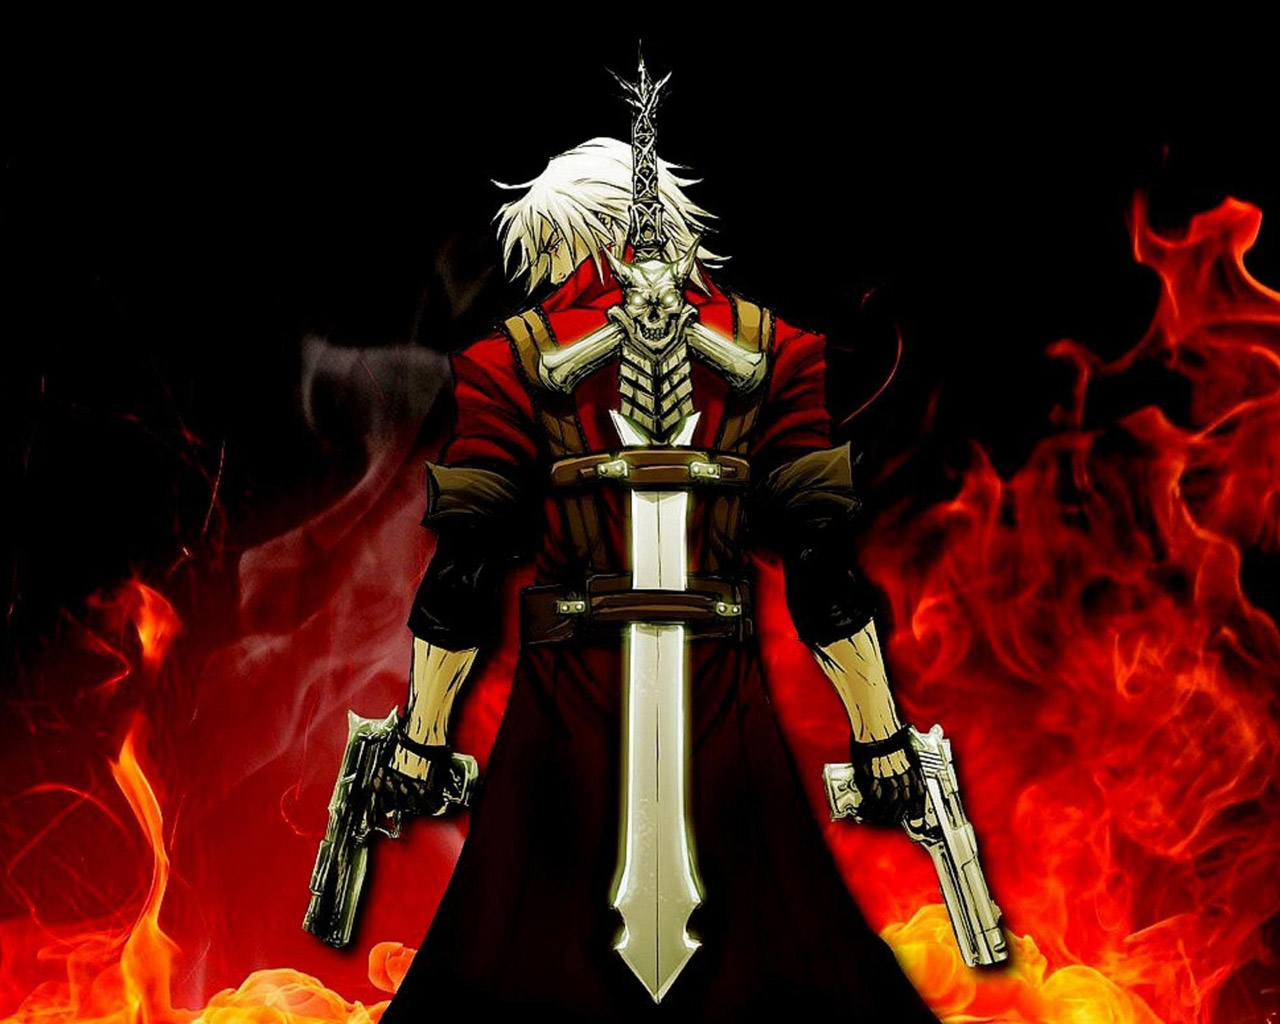 Devil May Cry 4 Wallpaper in 1280x1024